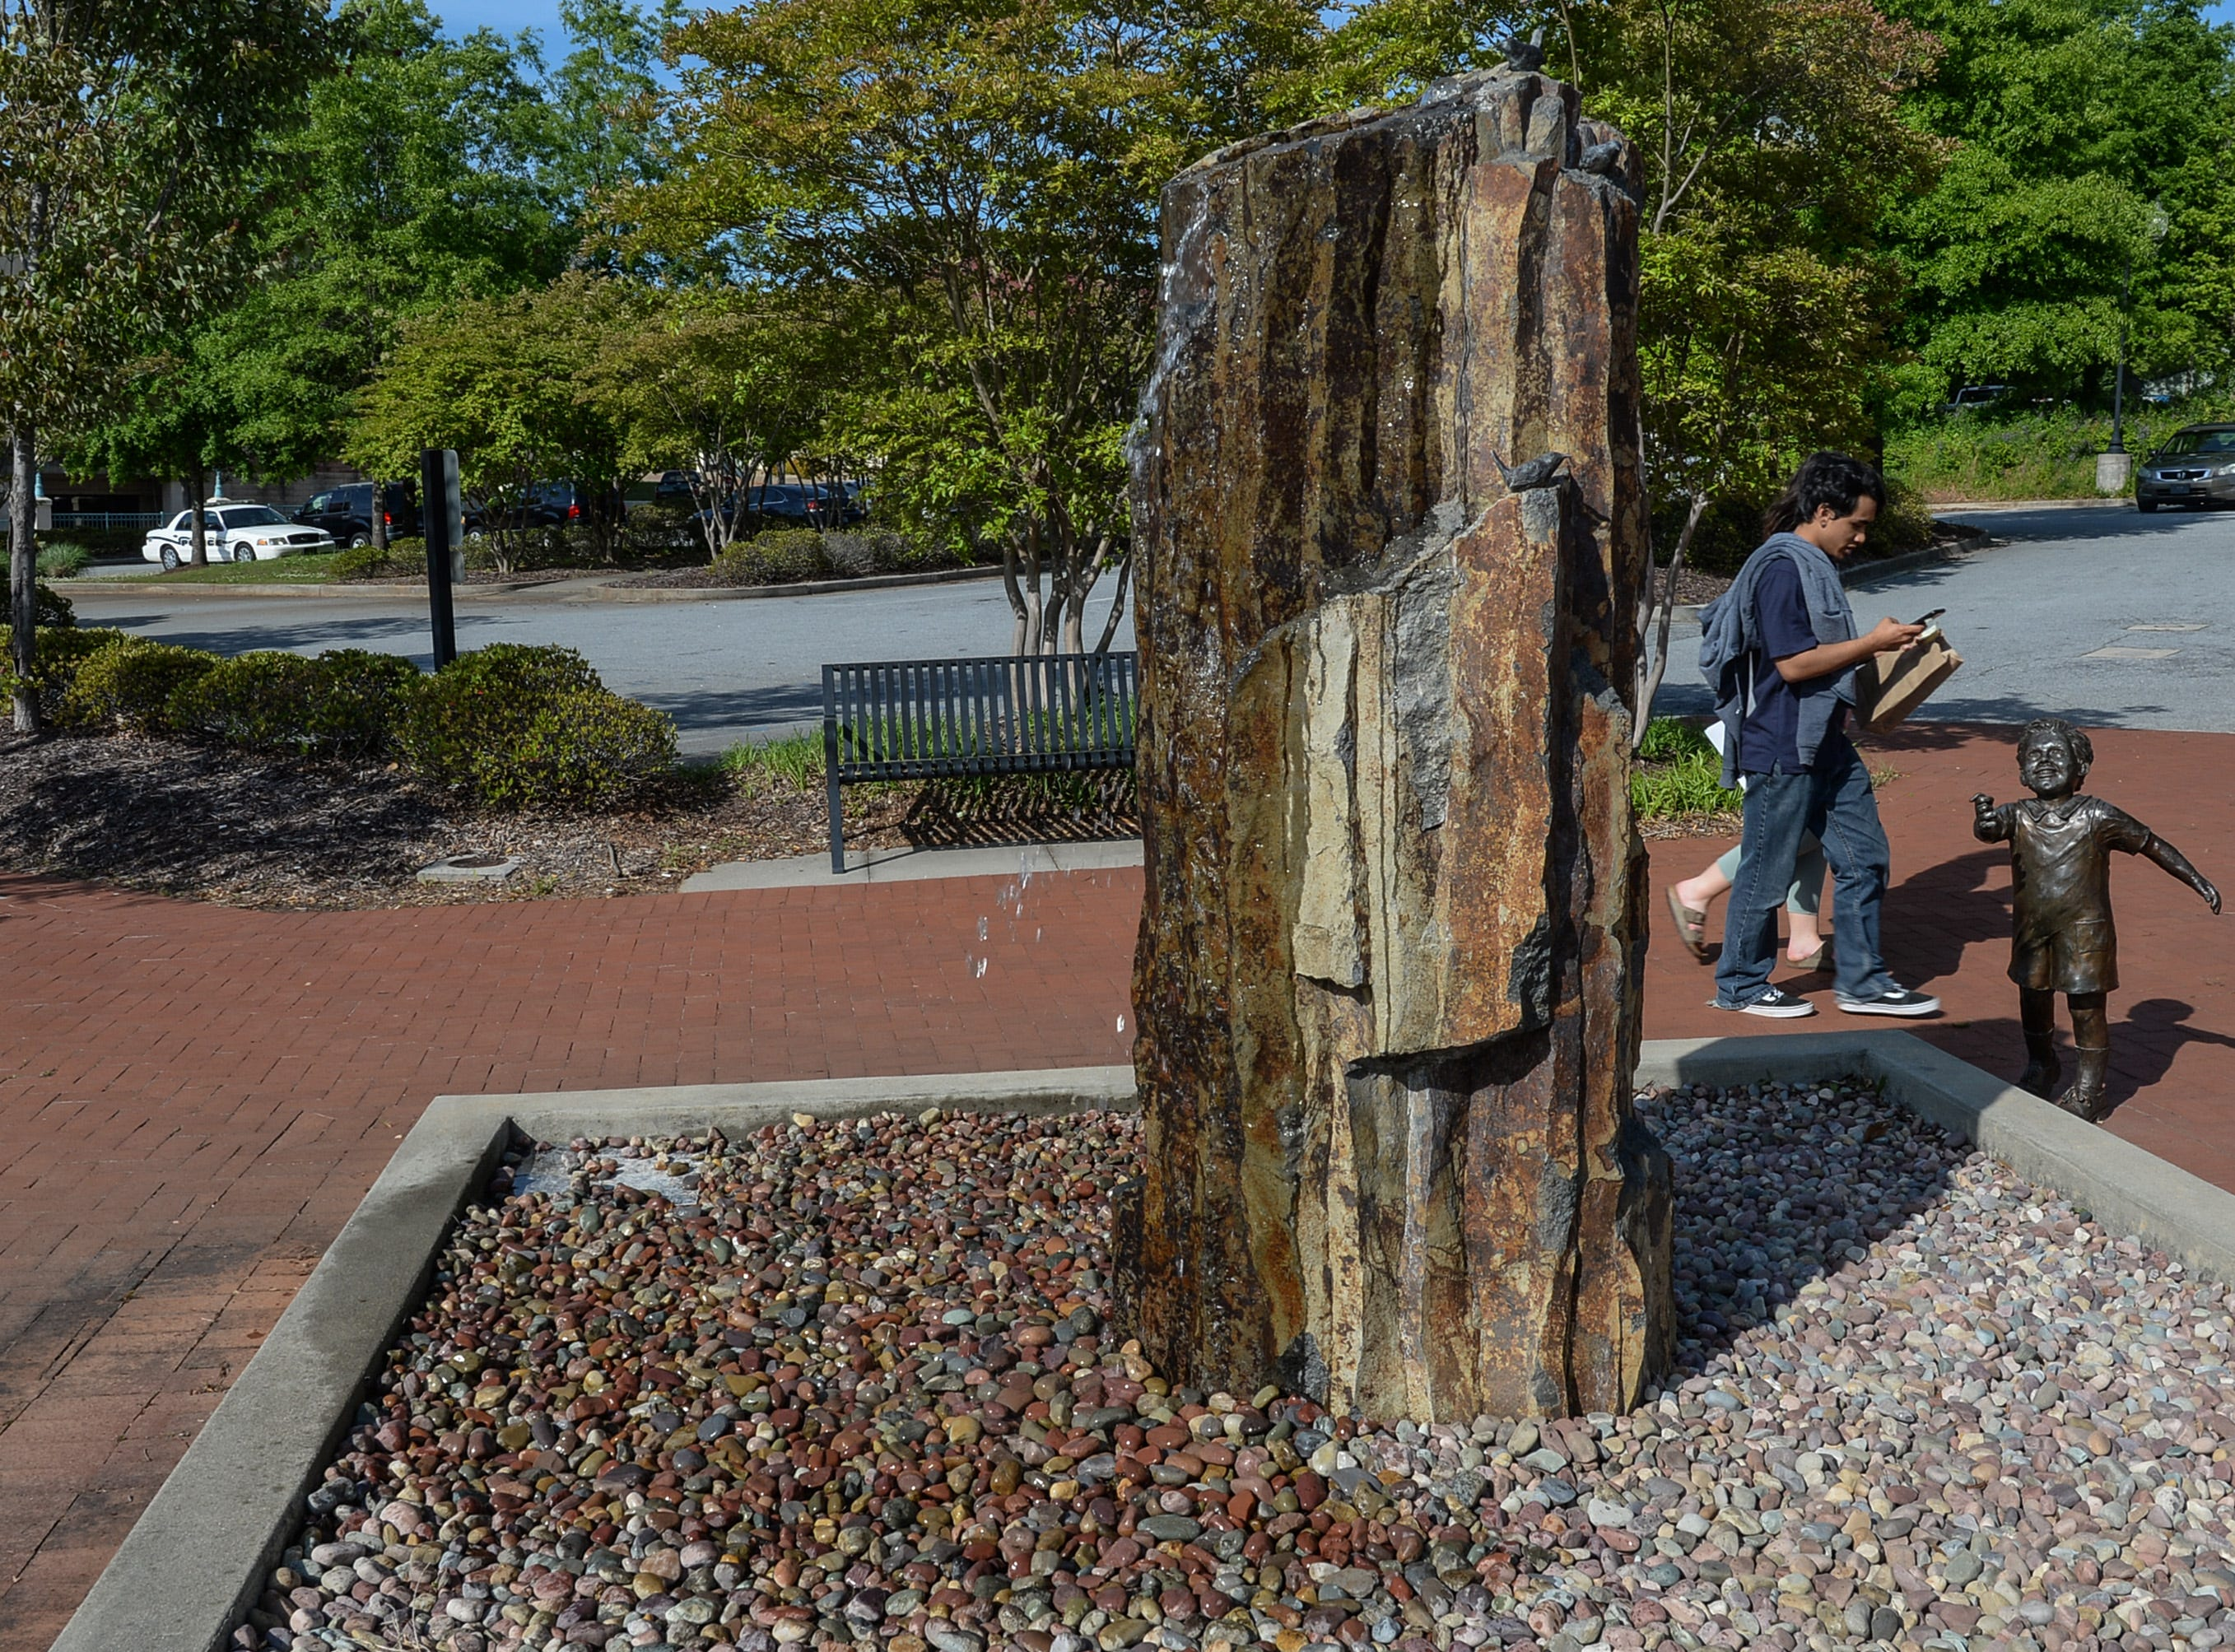 People walk by the Wren Fountain on South Main Street, a project that To Benefit Anderson group has completed since the first in 2007. The Foothills Community Foundation joined with the group in raising money for the projects.